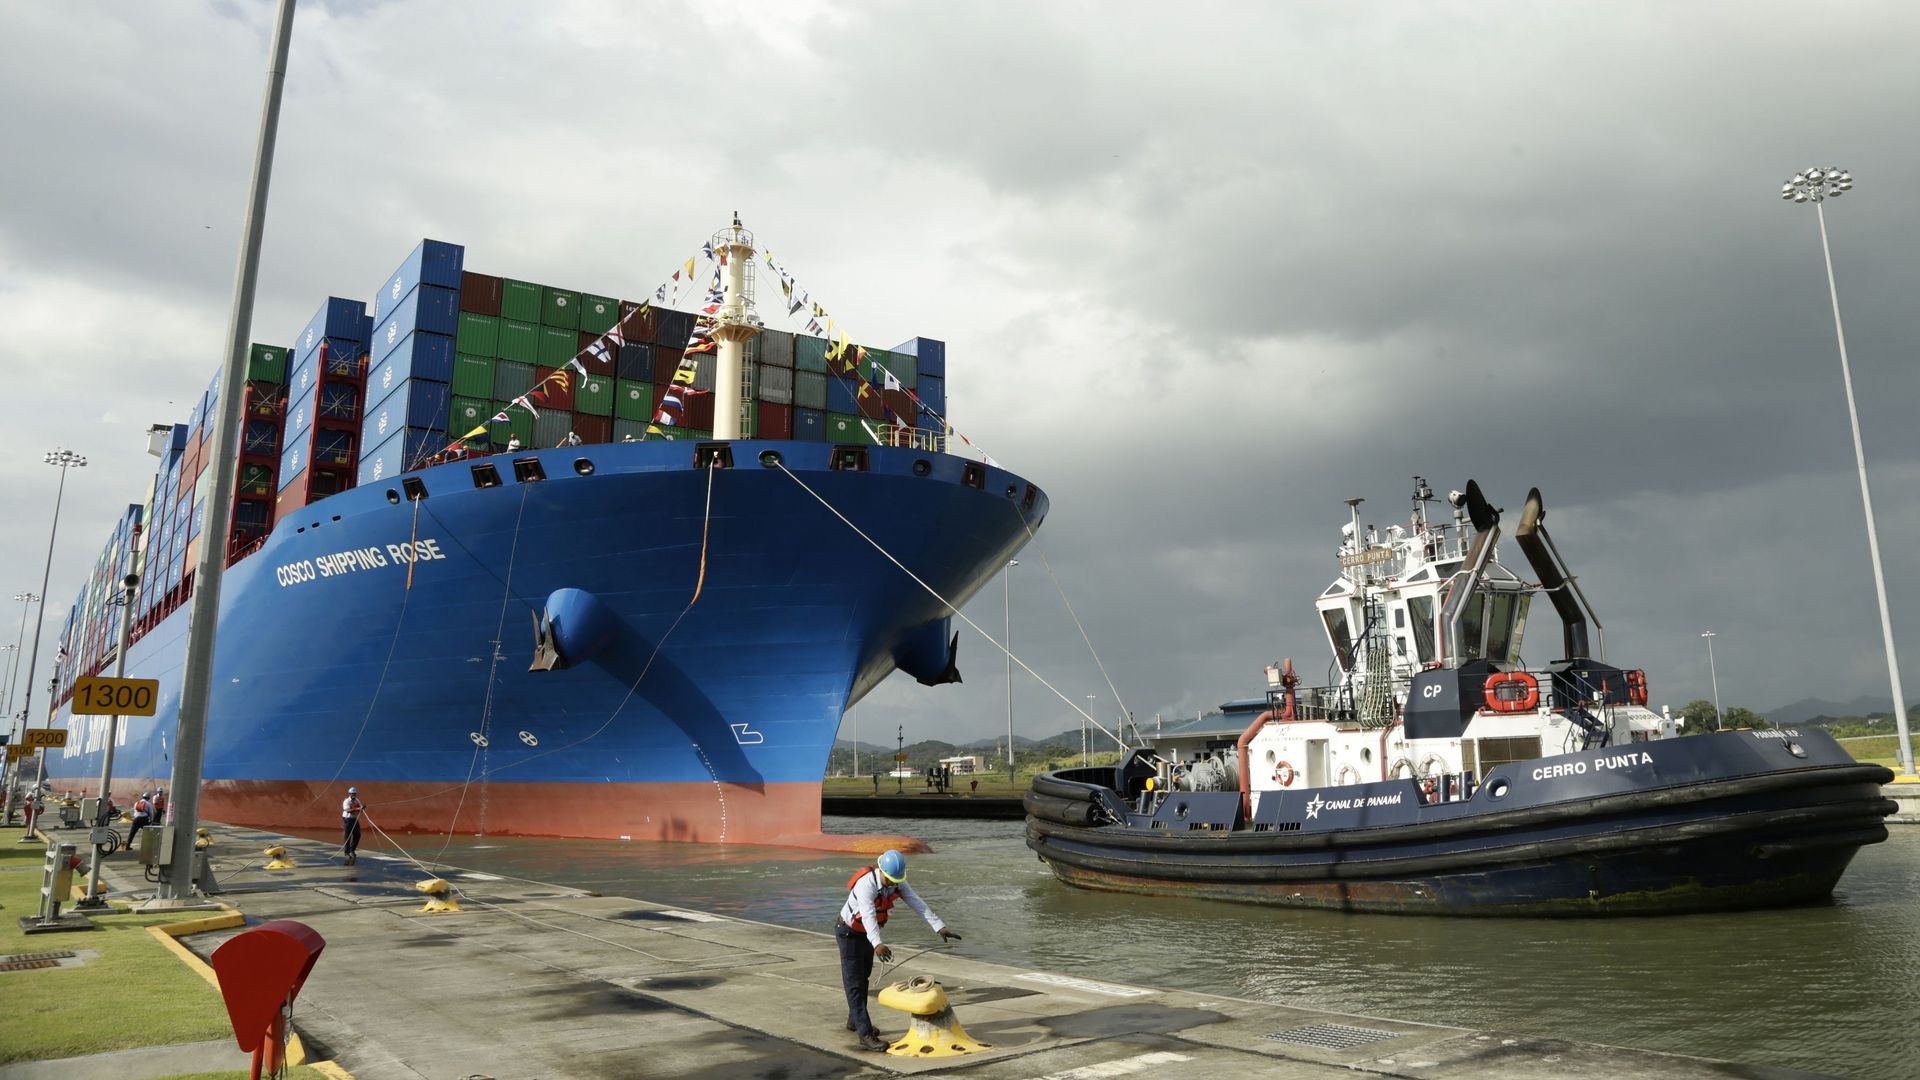 In this image, a dock worker at the Panama canal docks a huge shipping container that sits on the water.